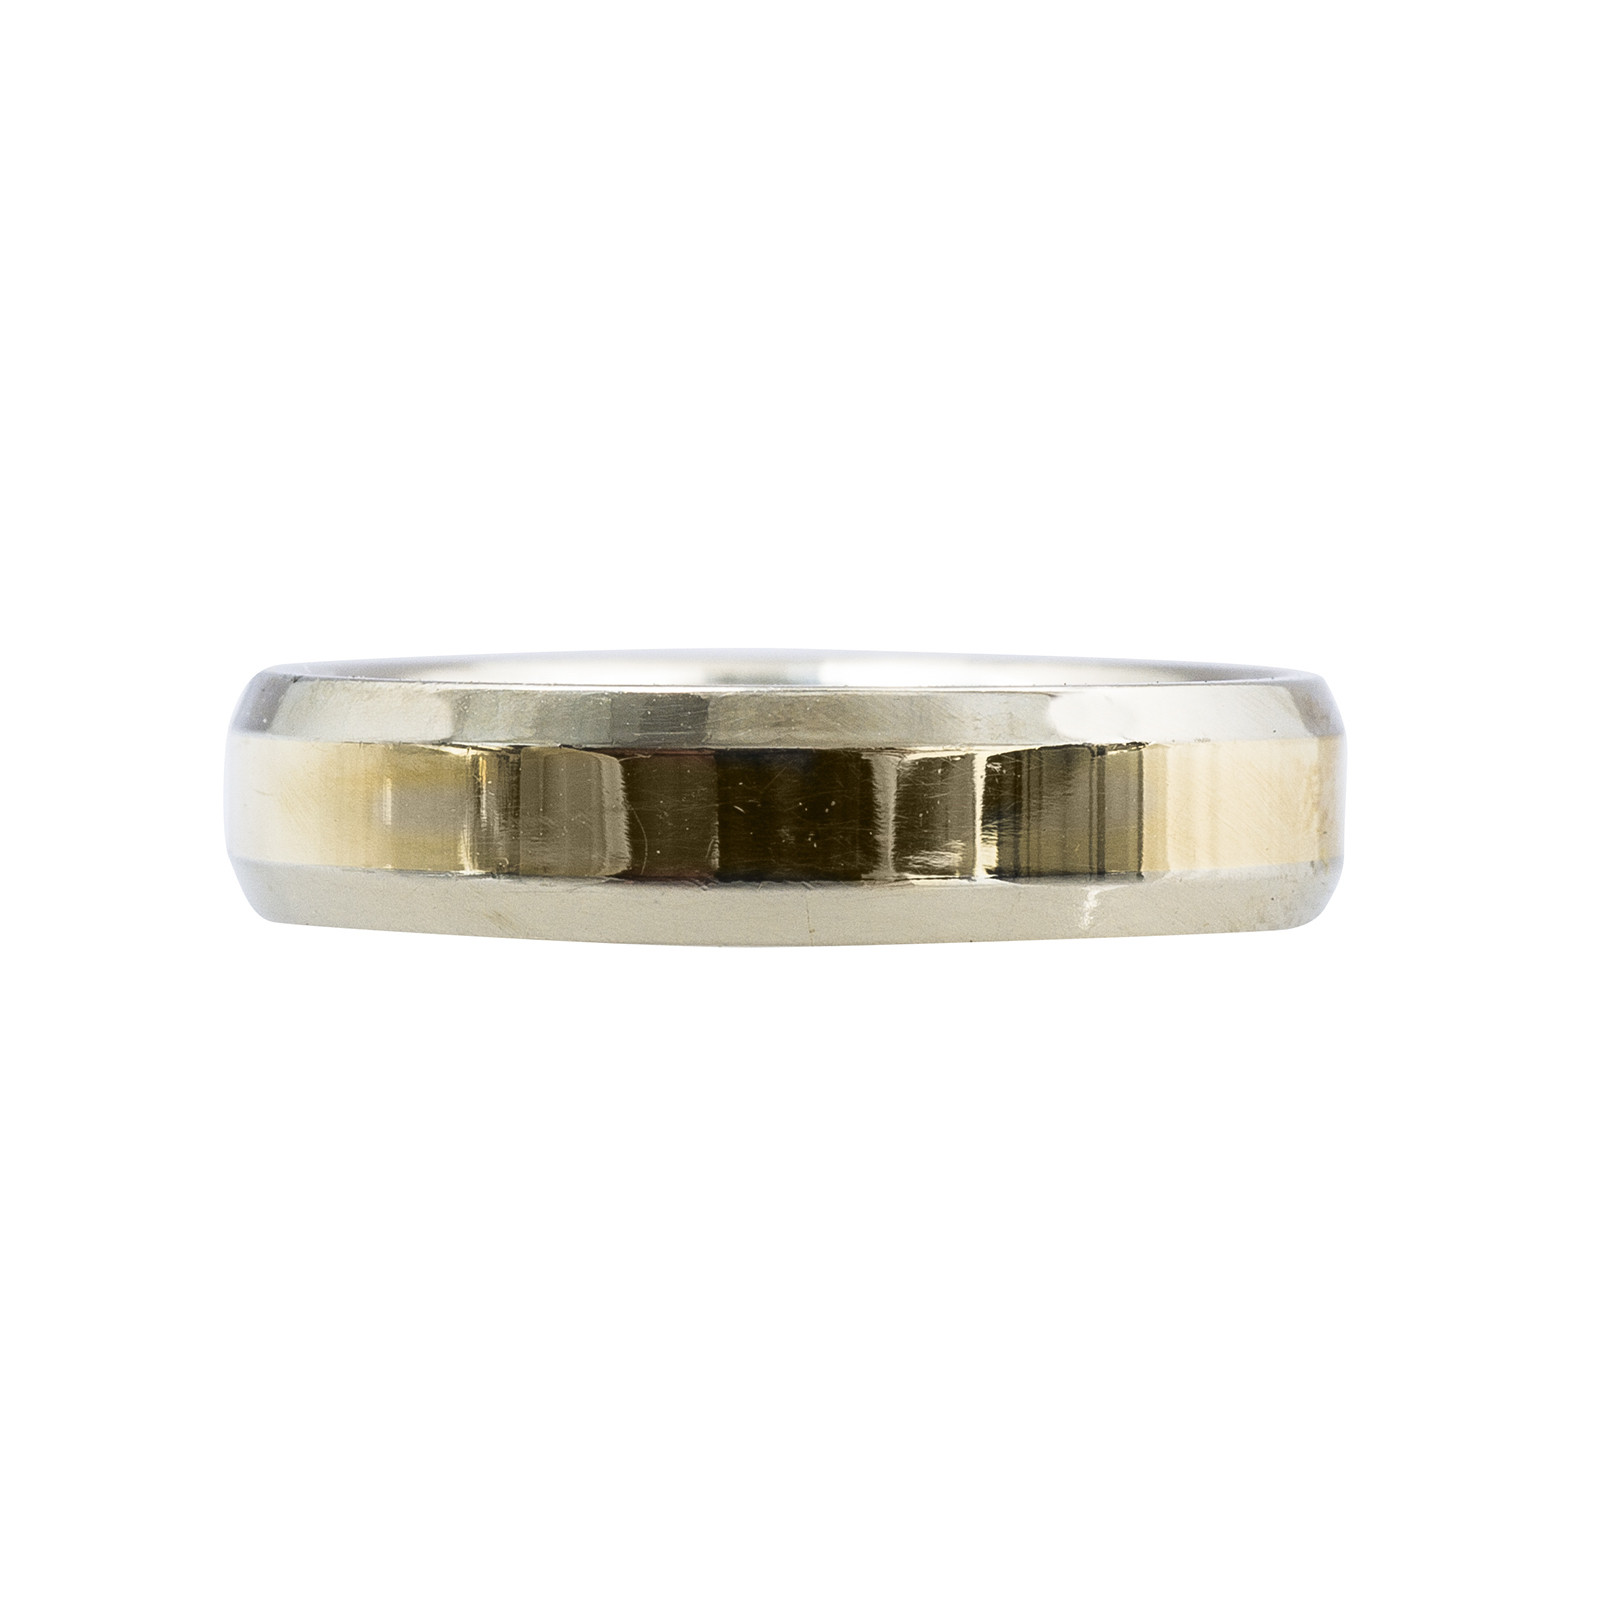 New Two-Tone Gold Men's Wedding Band